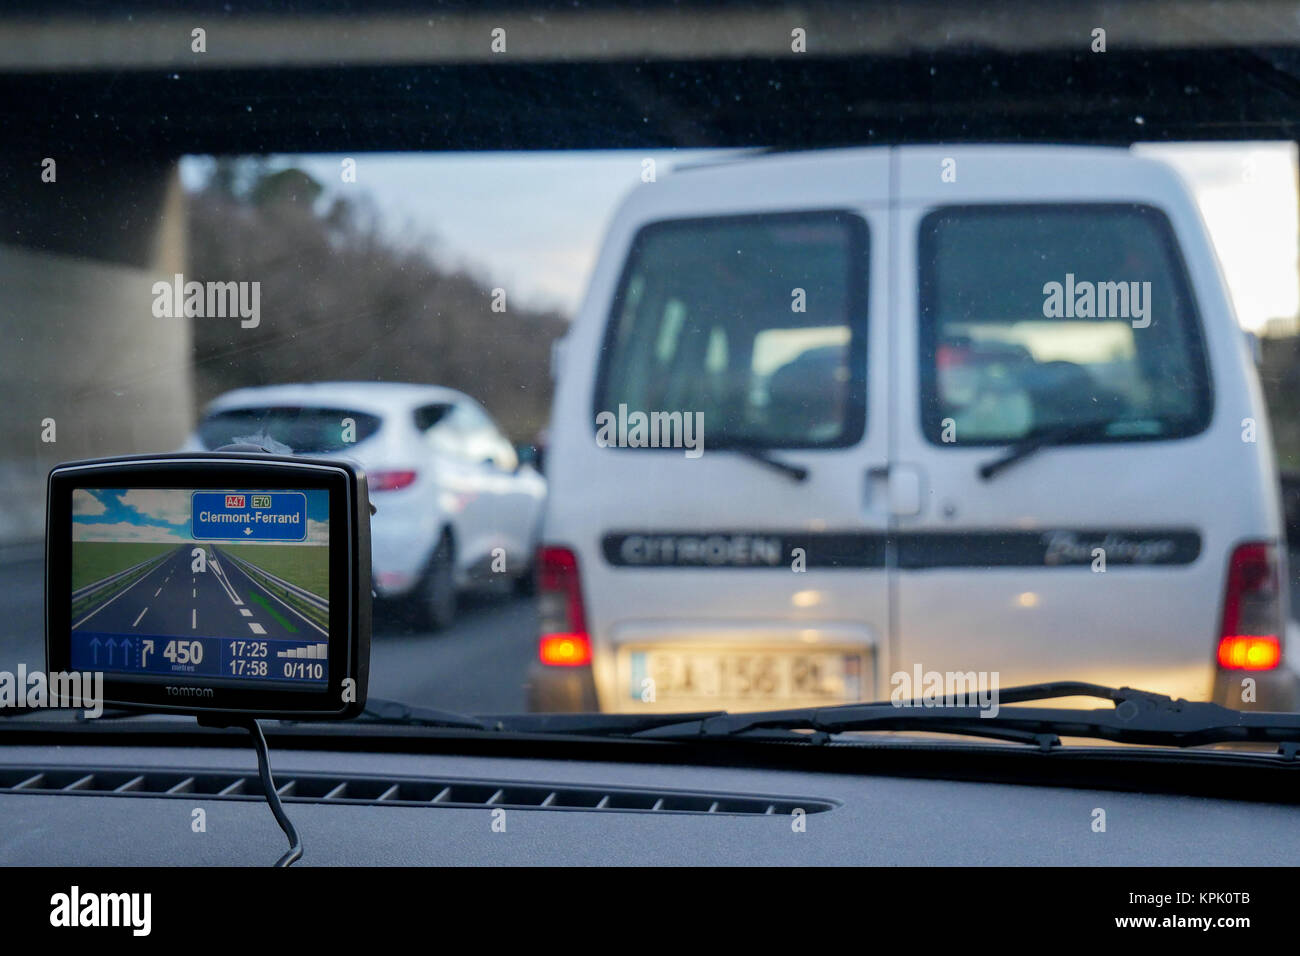 7 way navigation gfs true coil wiring diagram gps receiver stock photos and images alamy